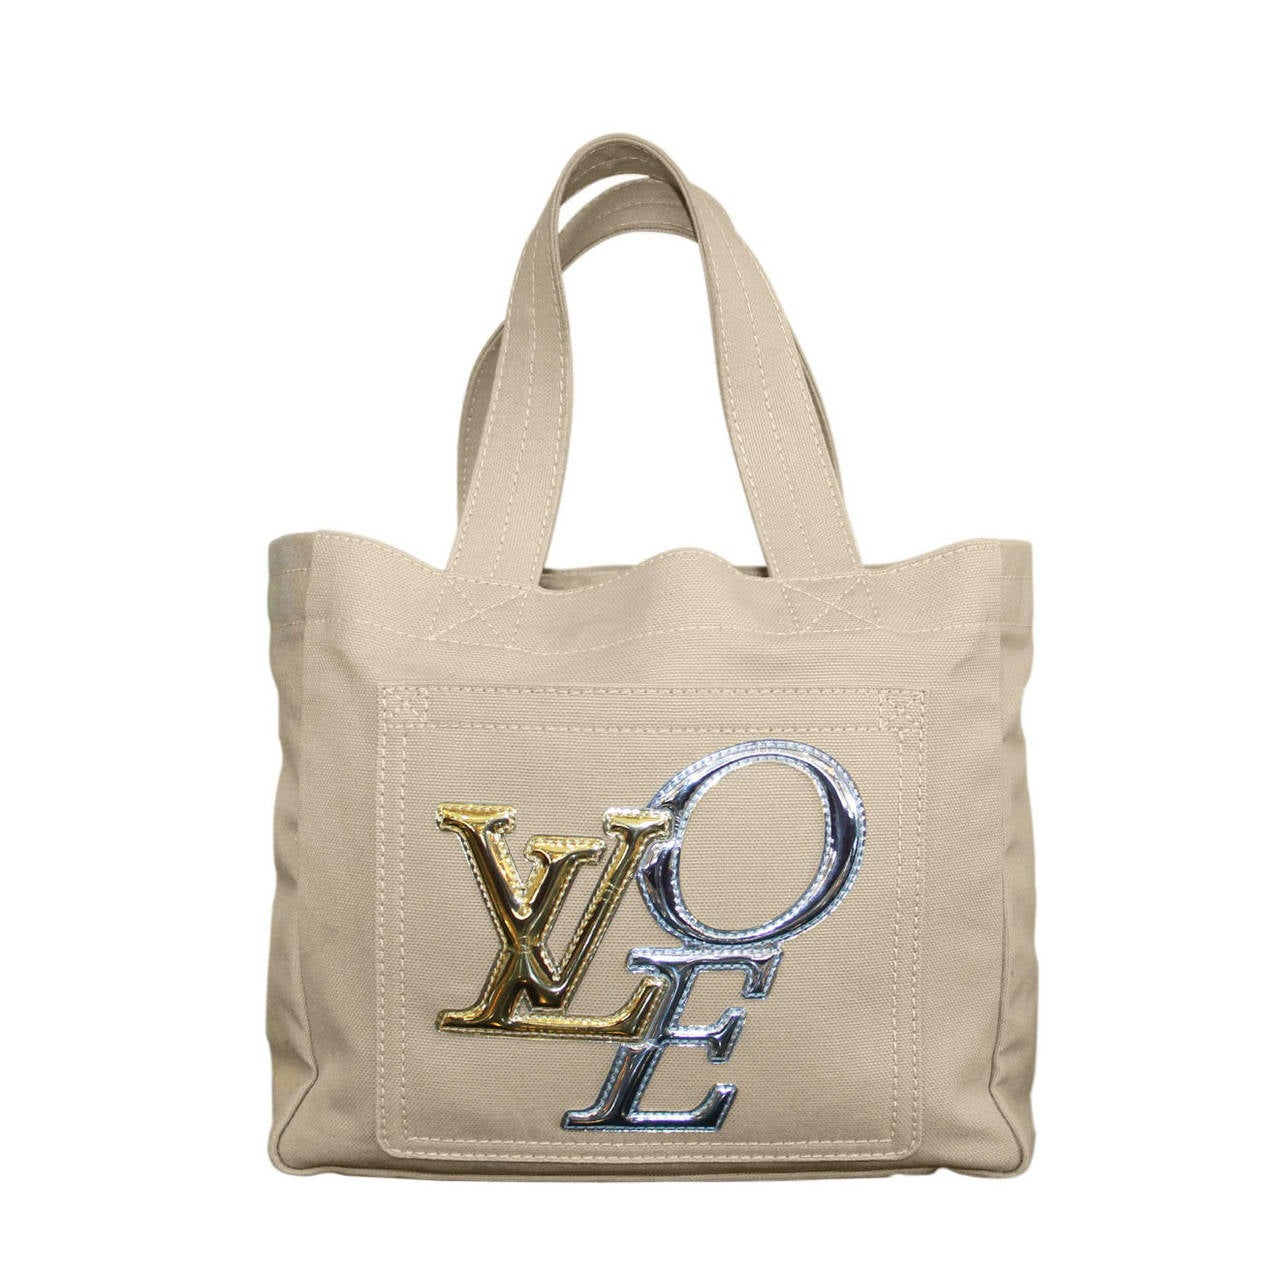 Louis Vuitton That S Love Canvas Metallic Pm Tote Bag For